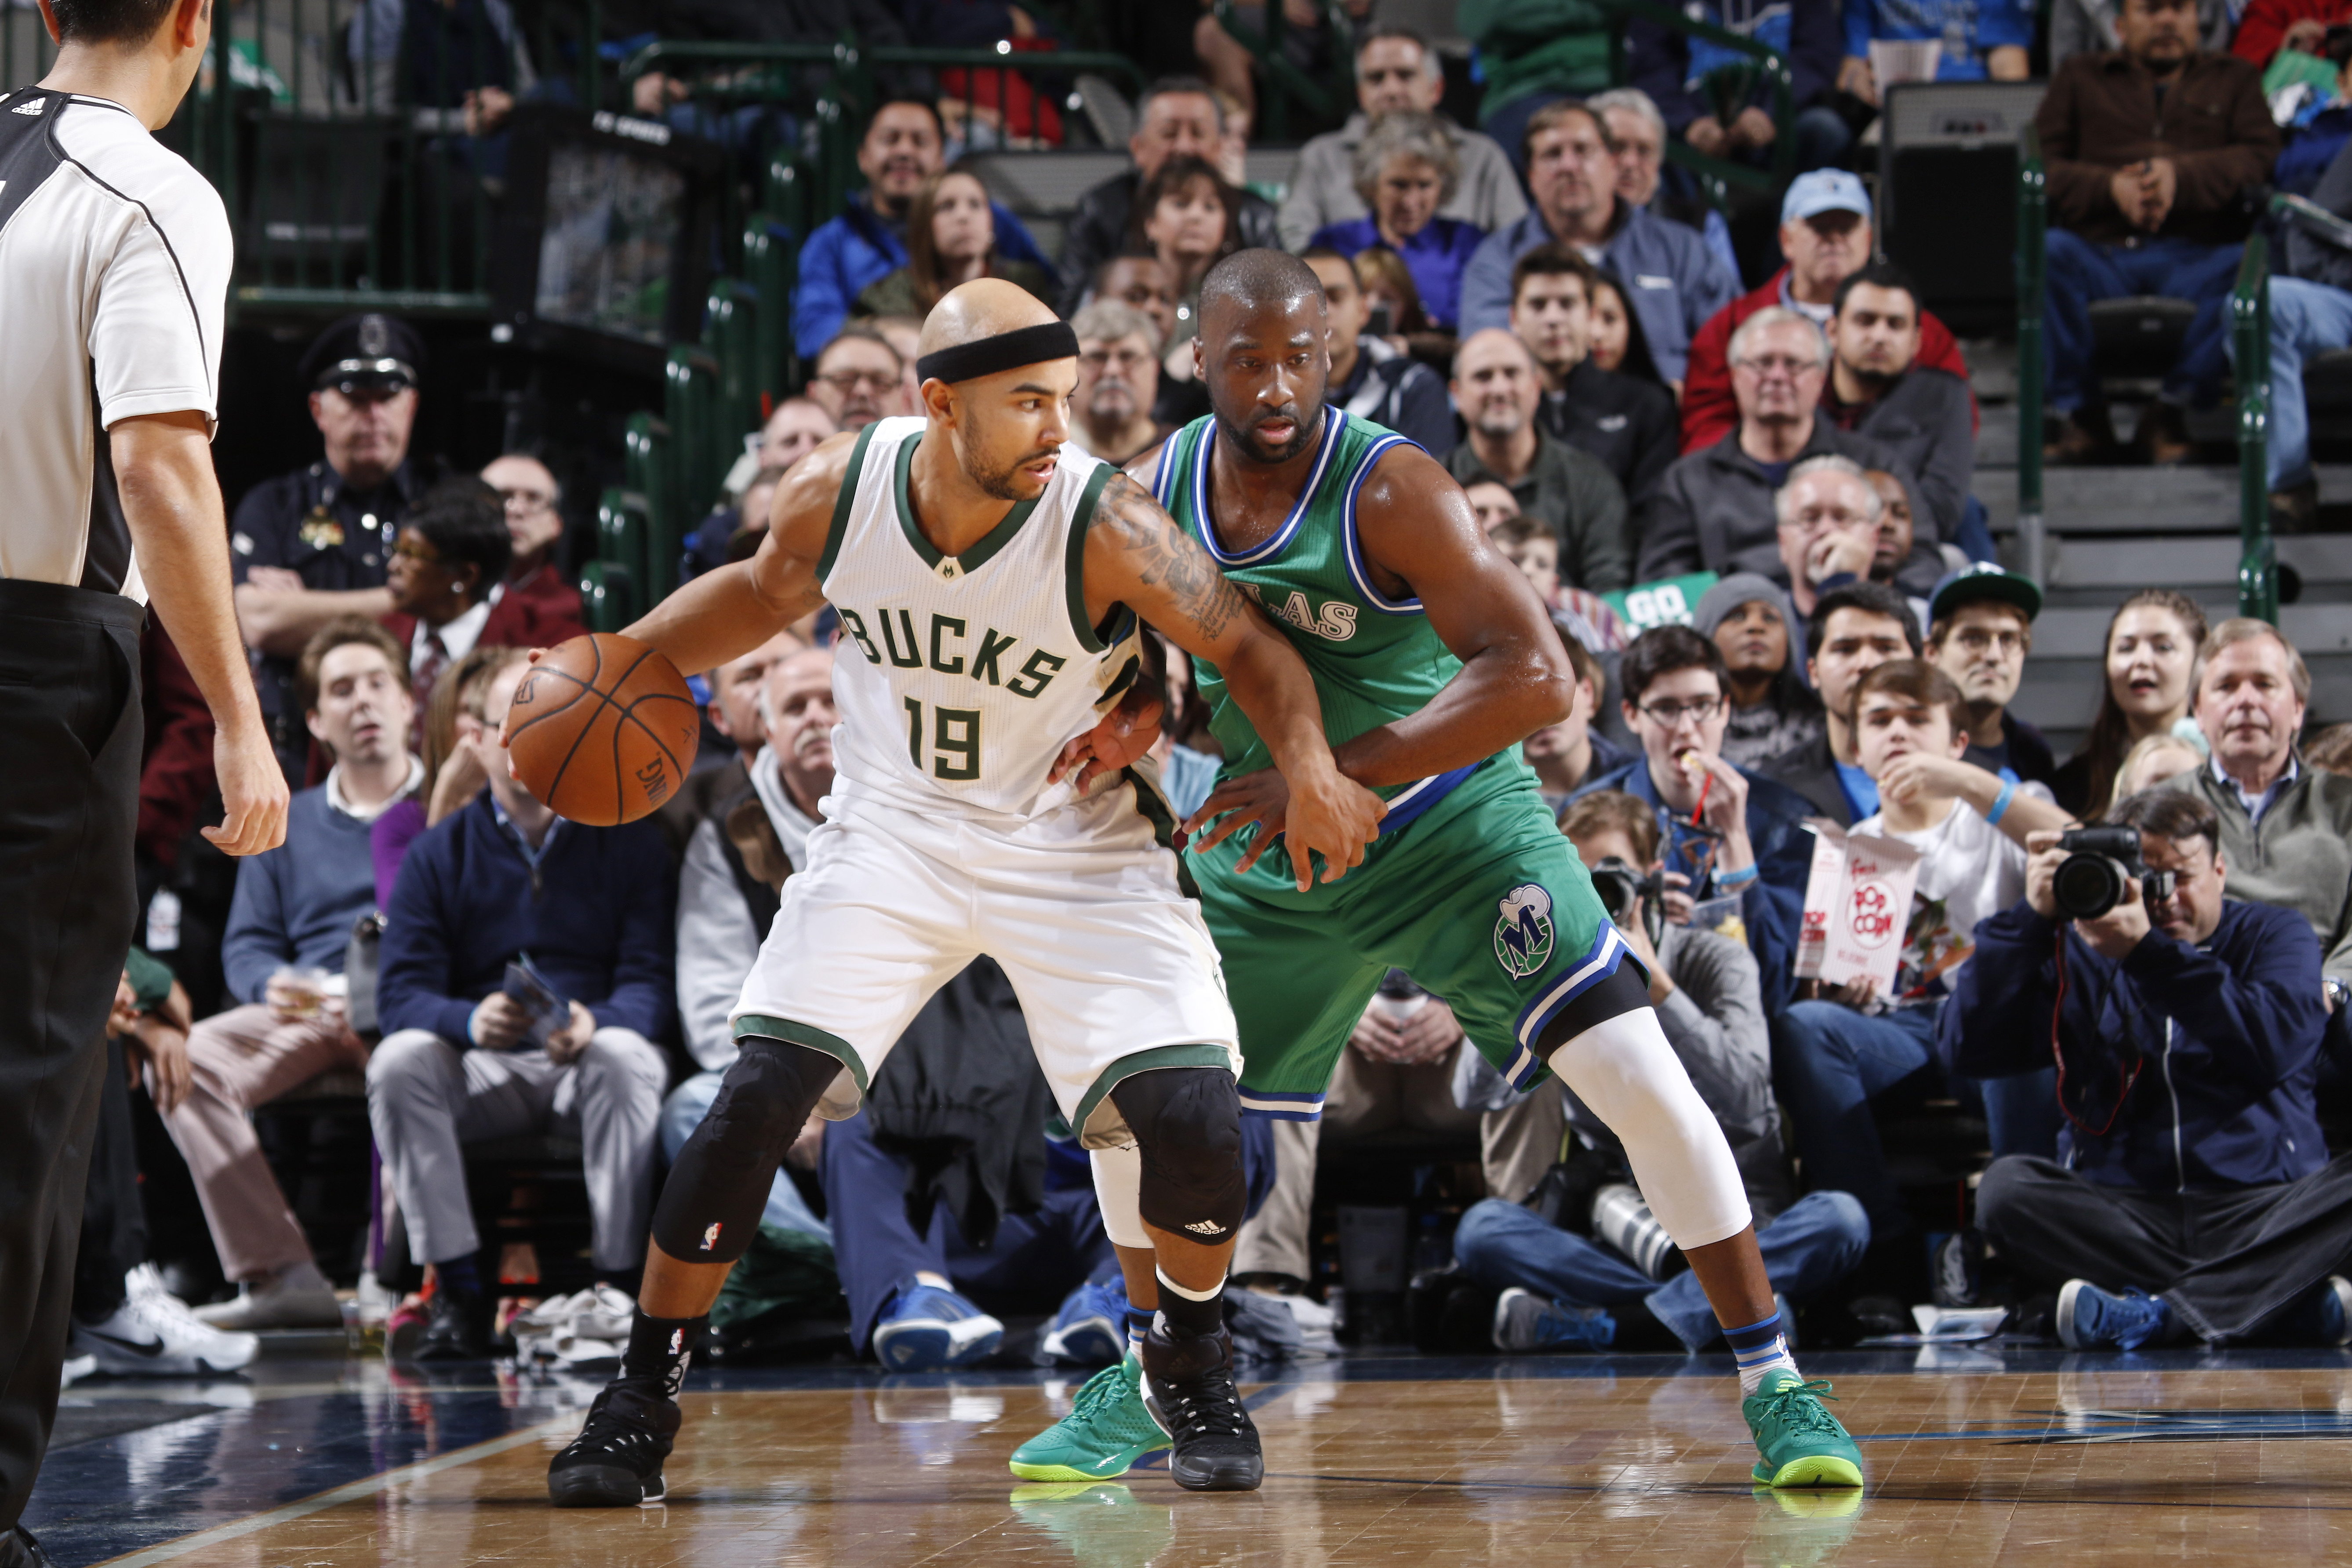 DALLAS, TX - DECEMBER 28: Jerryd Bayless #19 of the Milwaukee Bucks handles the ball against Raymond Felton #2 of the Dallas Mavericks on December 28, 2015 at the American Airlines Center in Dallas, Texas. (Photo by Glenn James/NBAE via Getty Images)